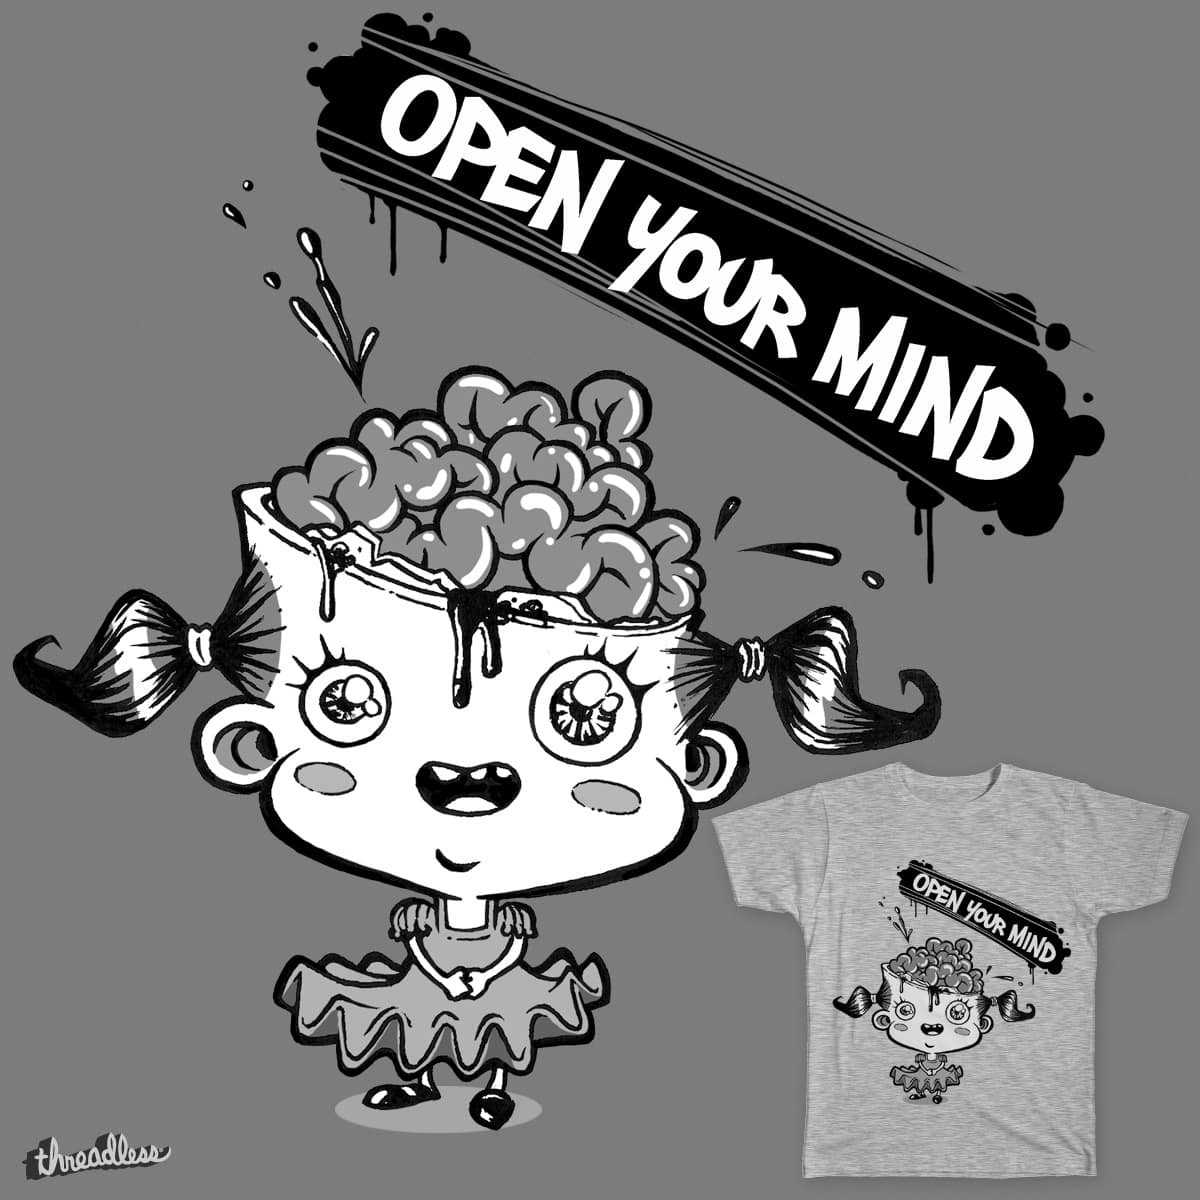 Open Your Mind by JonathanLemay on Threadless